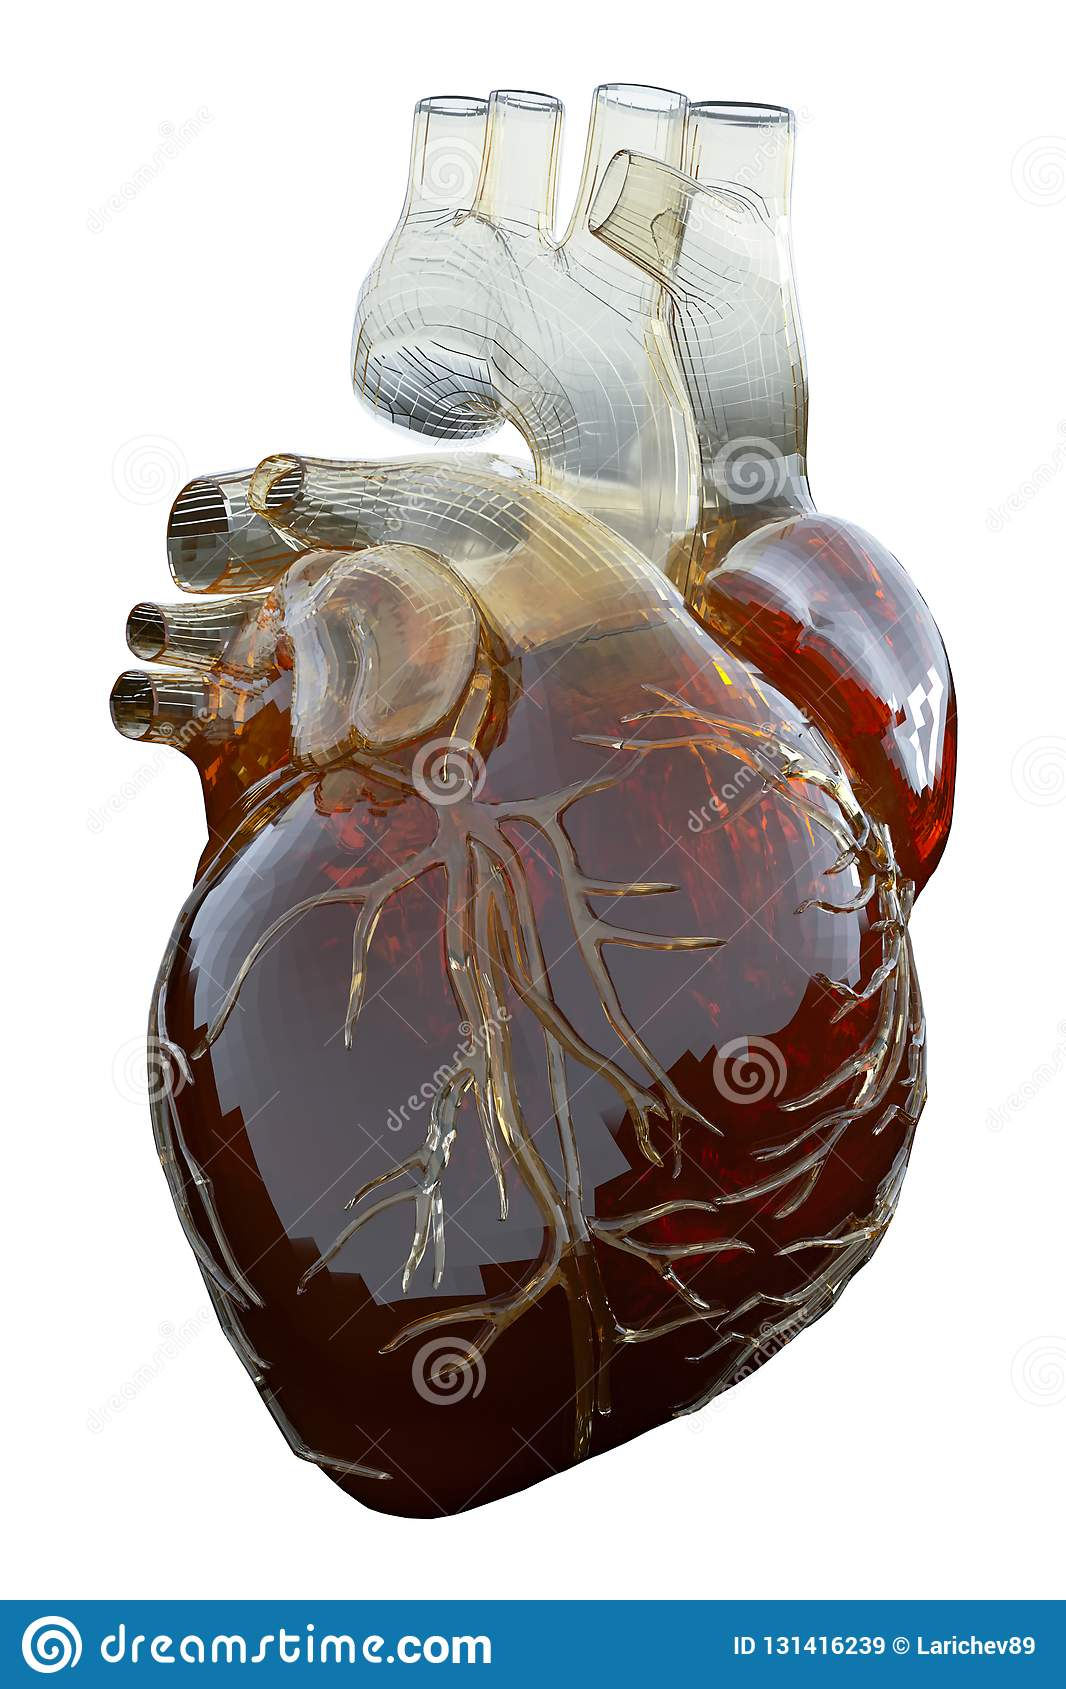 3d rendered medically accurate illustration of an artificial heart